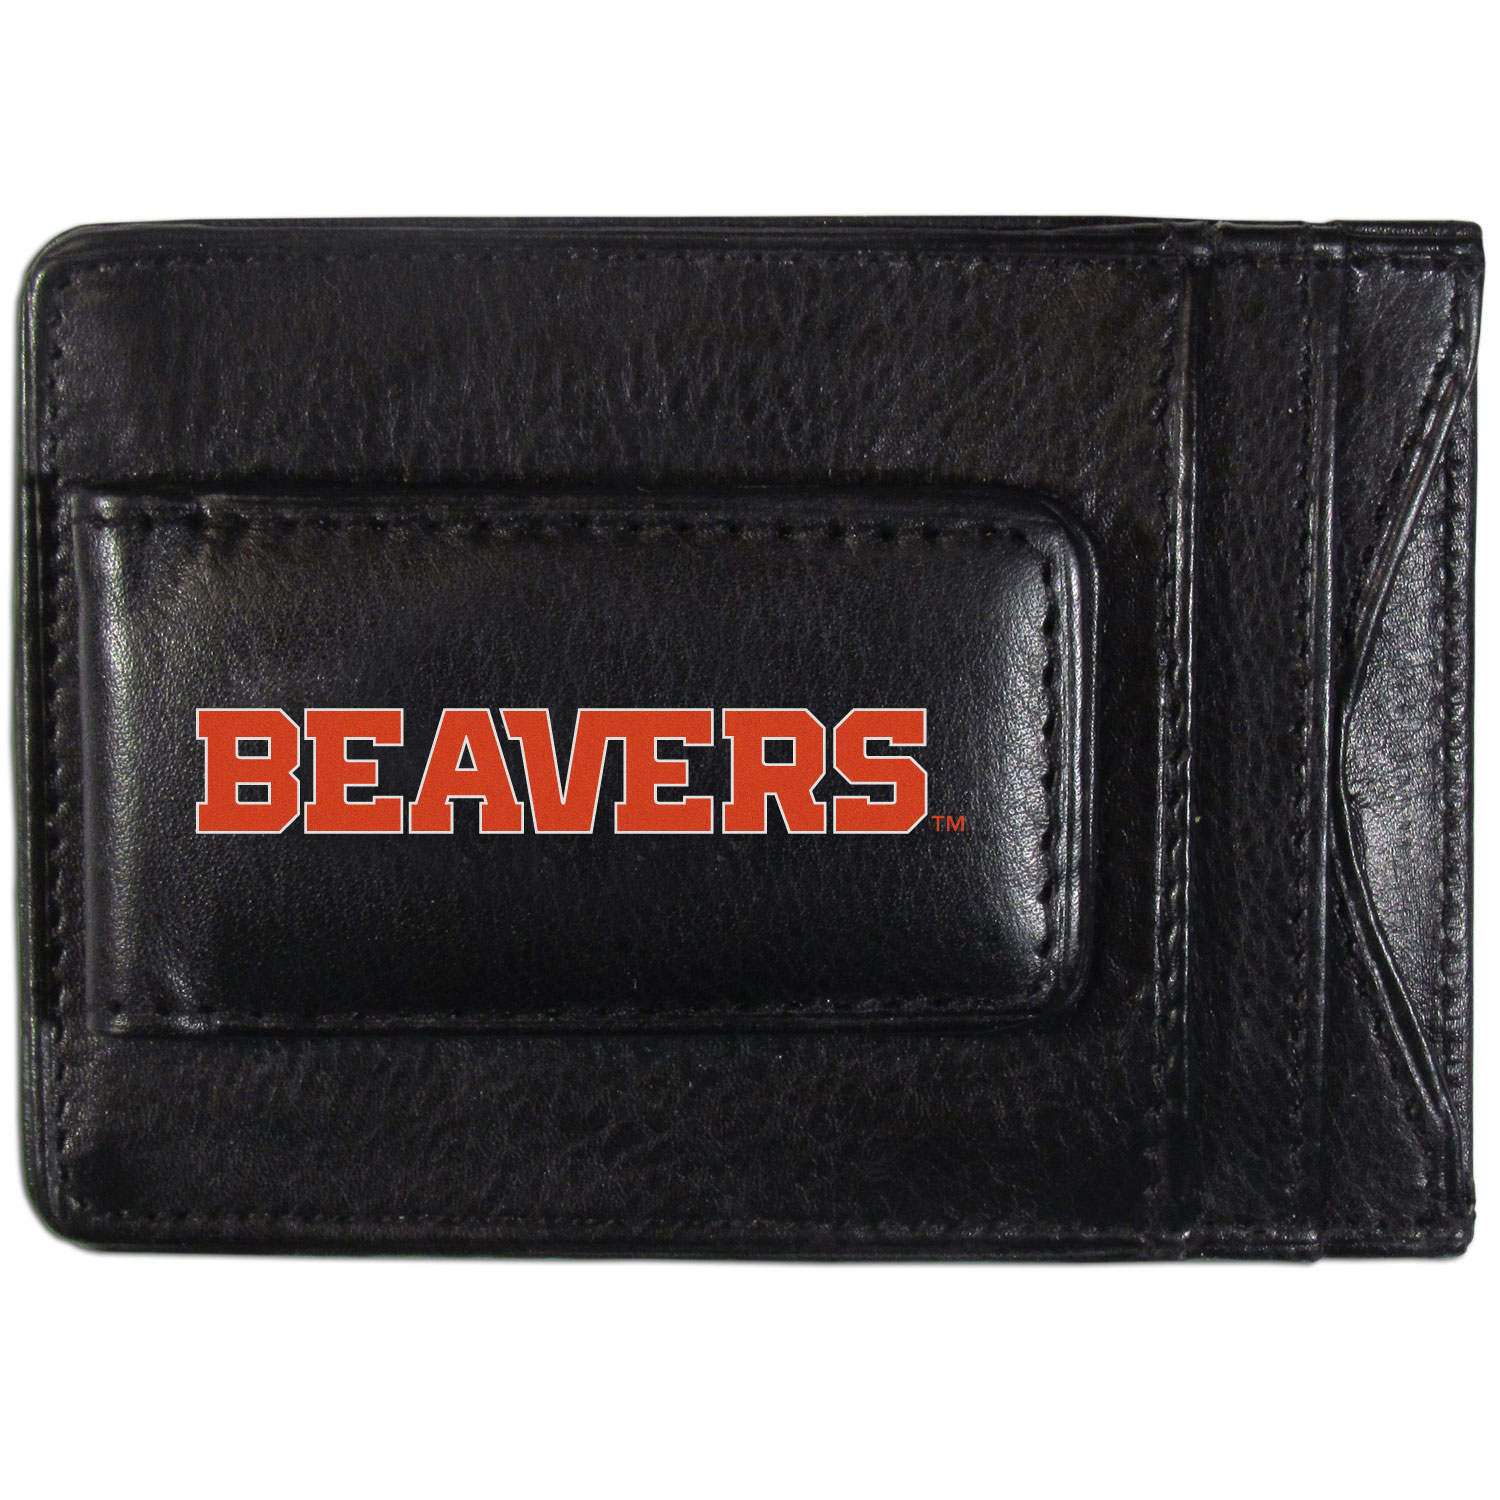 Oregon St. Beavers Logo Leather Cash and Cardholder - This super slim leather wallet lets you have all the benefits of a money clip while keeping the organization of a wallet. On one side of this front pocket wallet there is a strong, magnetic money clip to keep your cash easily accessible and the?Oregon St. Beavers team logo on the front. The versatile men's accessory is a perfect addition to your fan apparel.